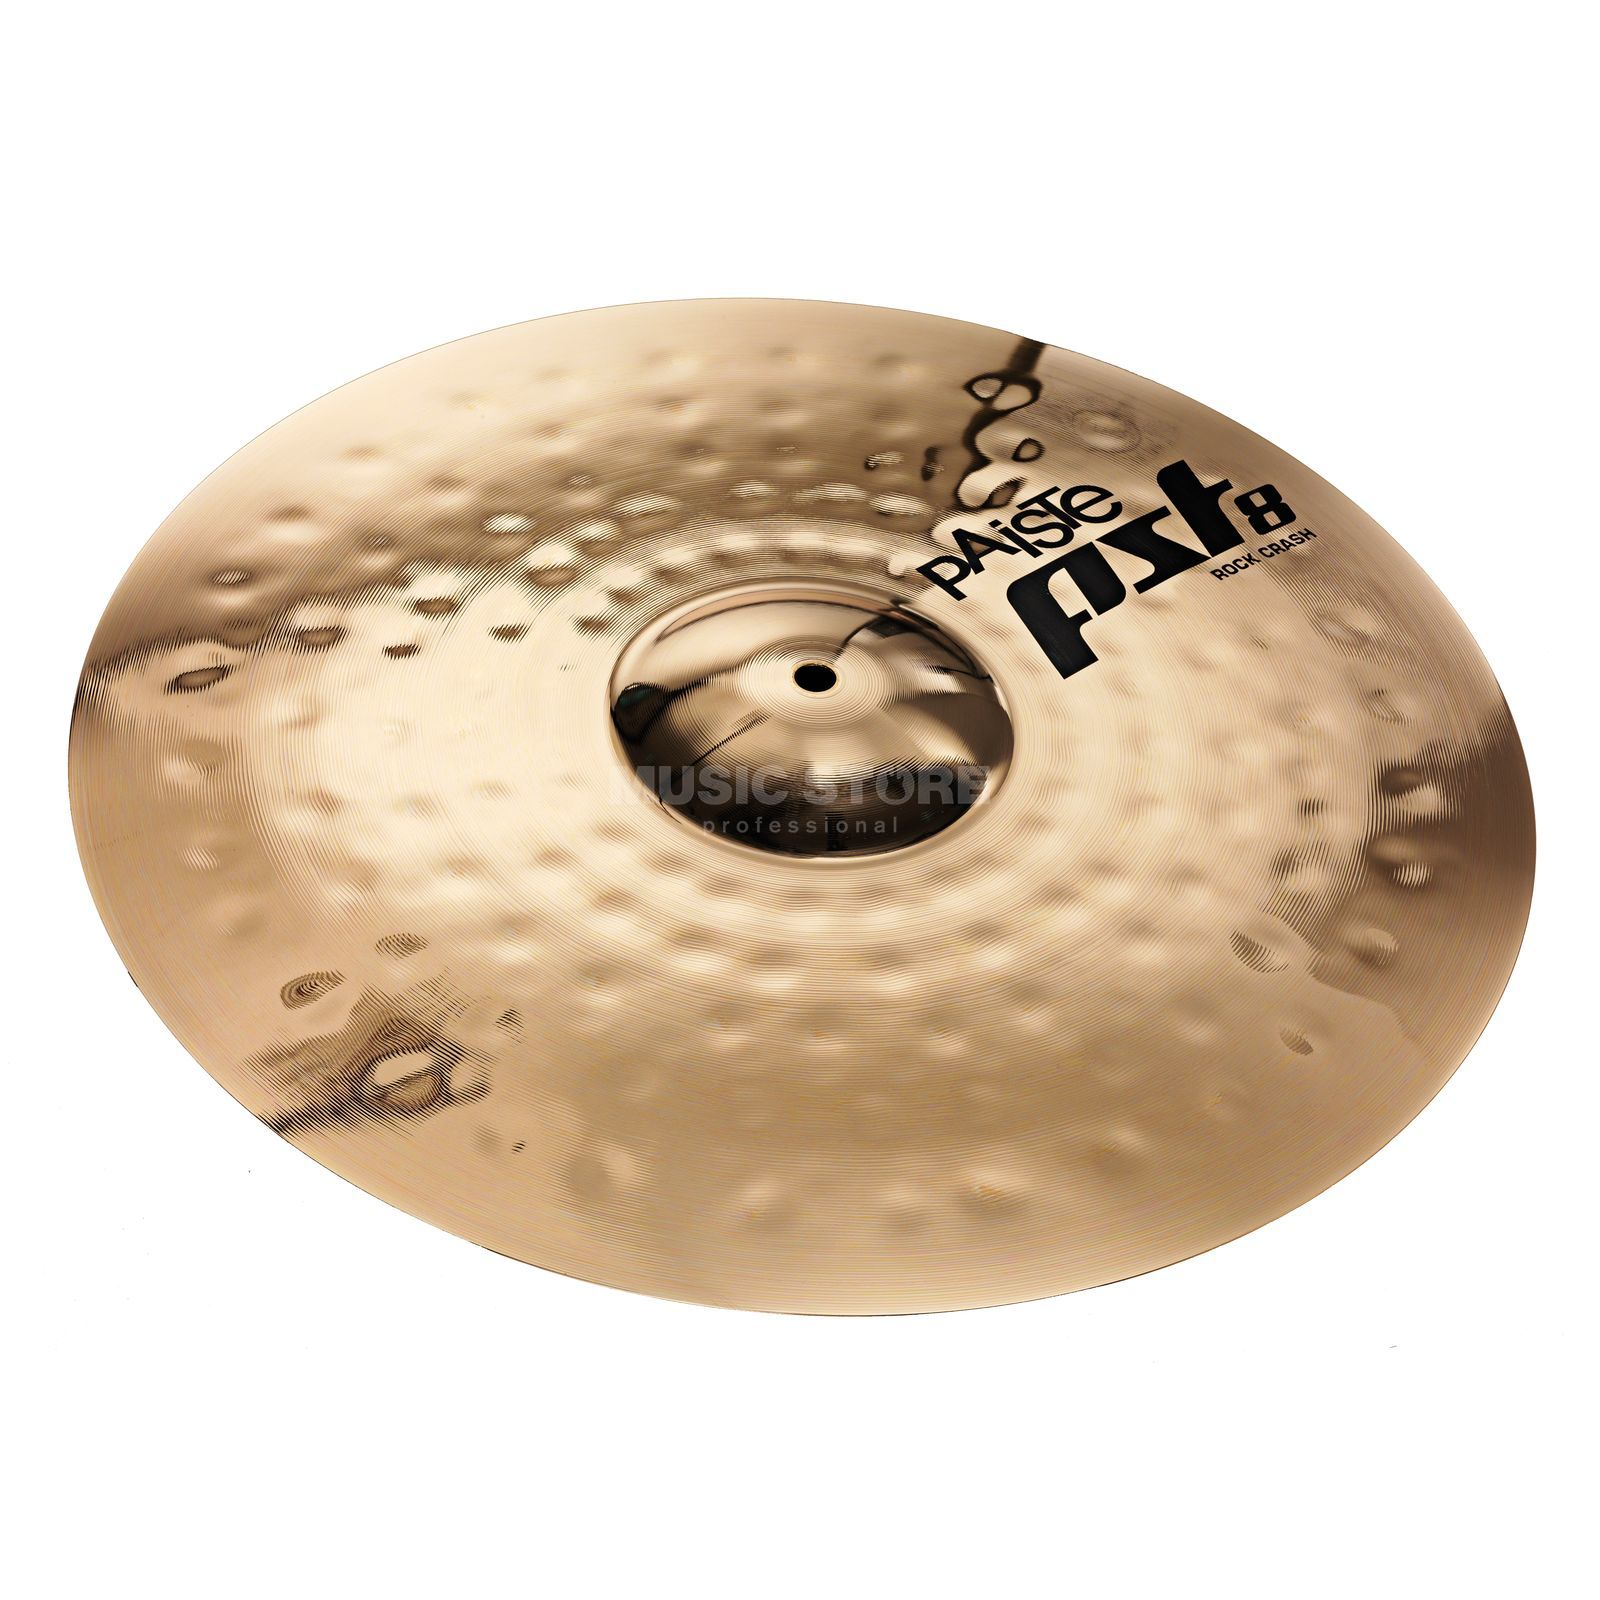 "Paiste PST8 Rock Crash 16"", Reflector Finish Produktbillede"